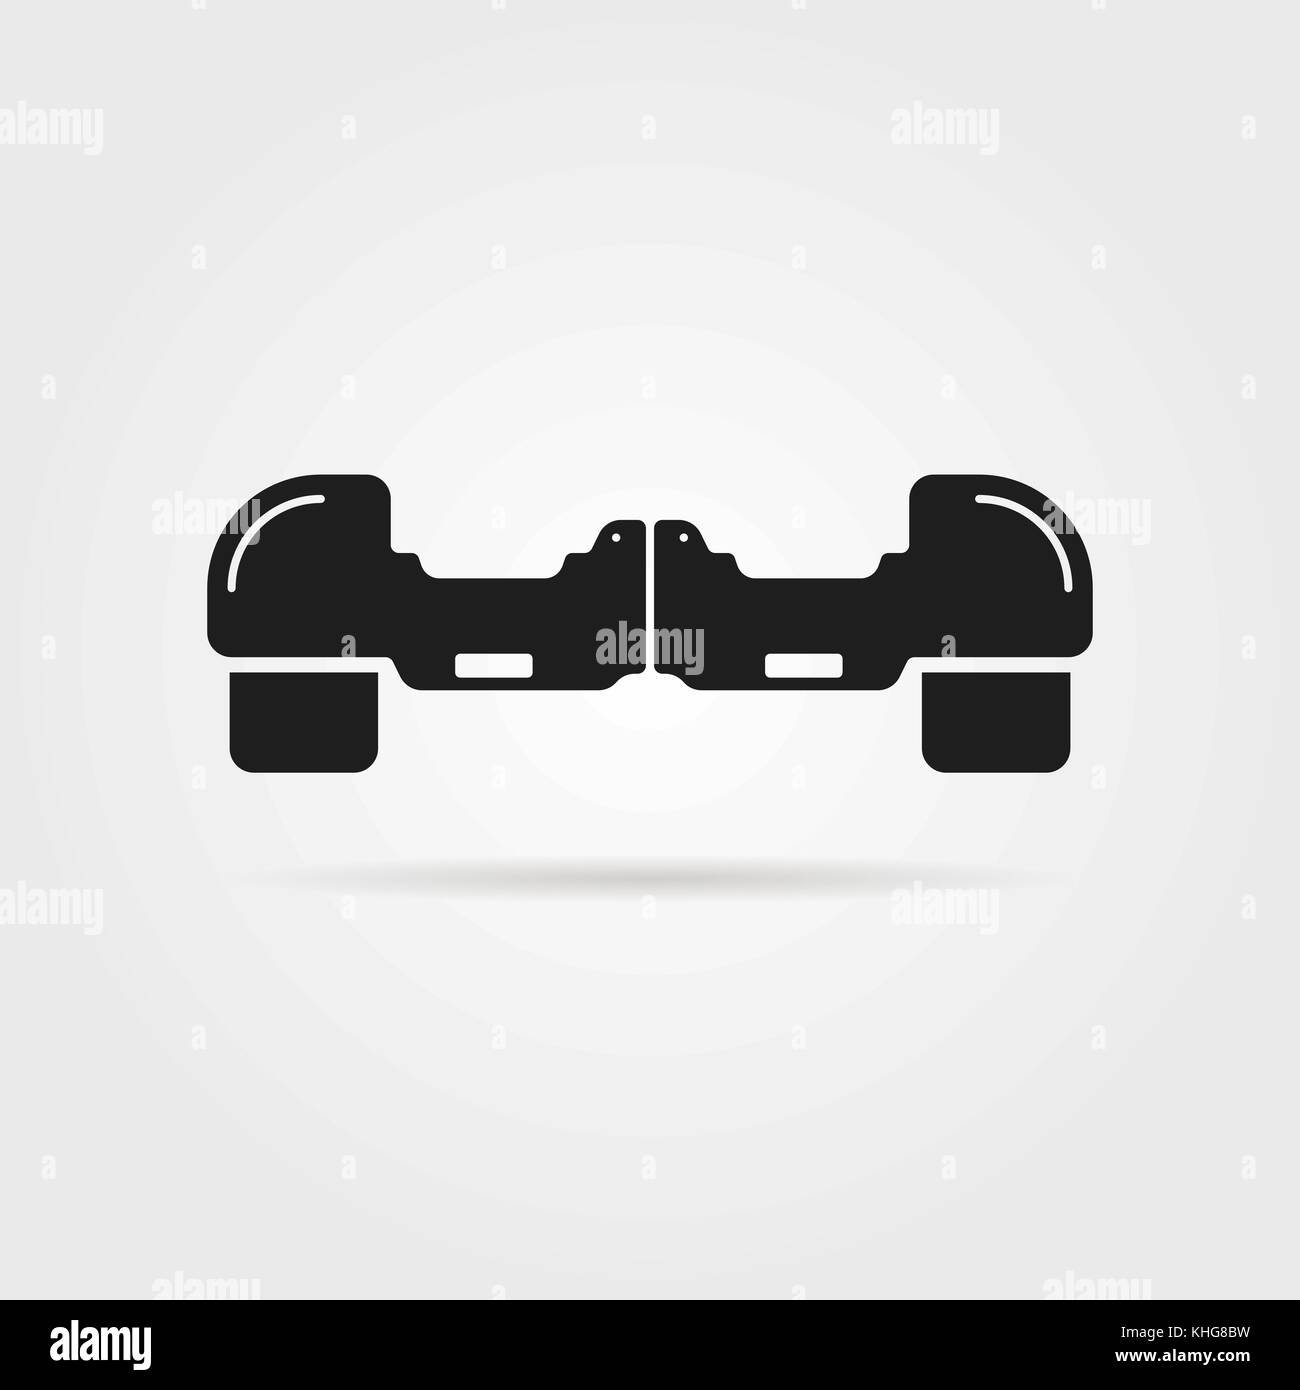 simple hoverboard icon with shadow - Stock Image